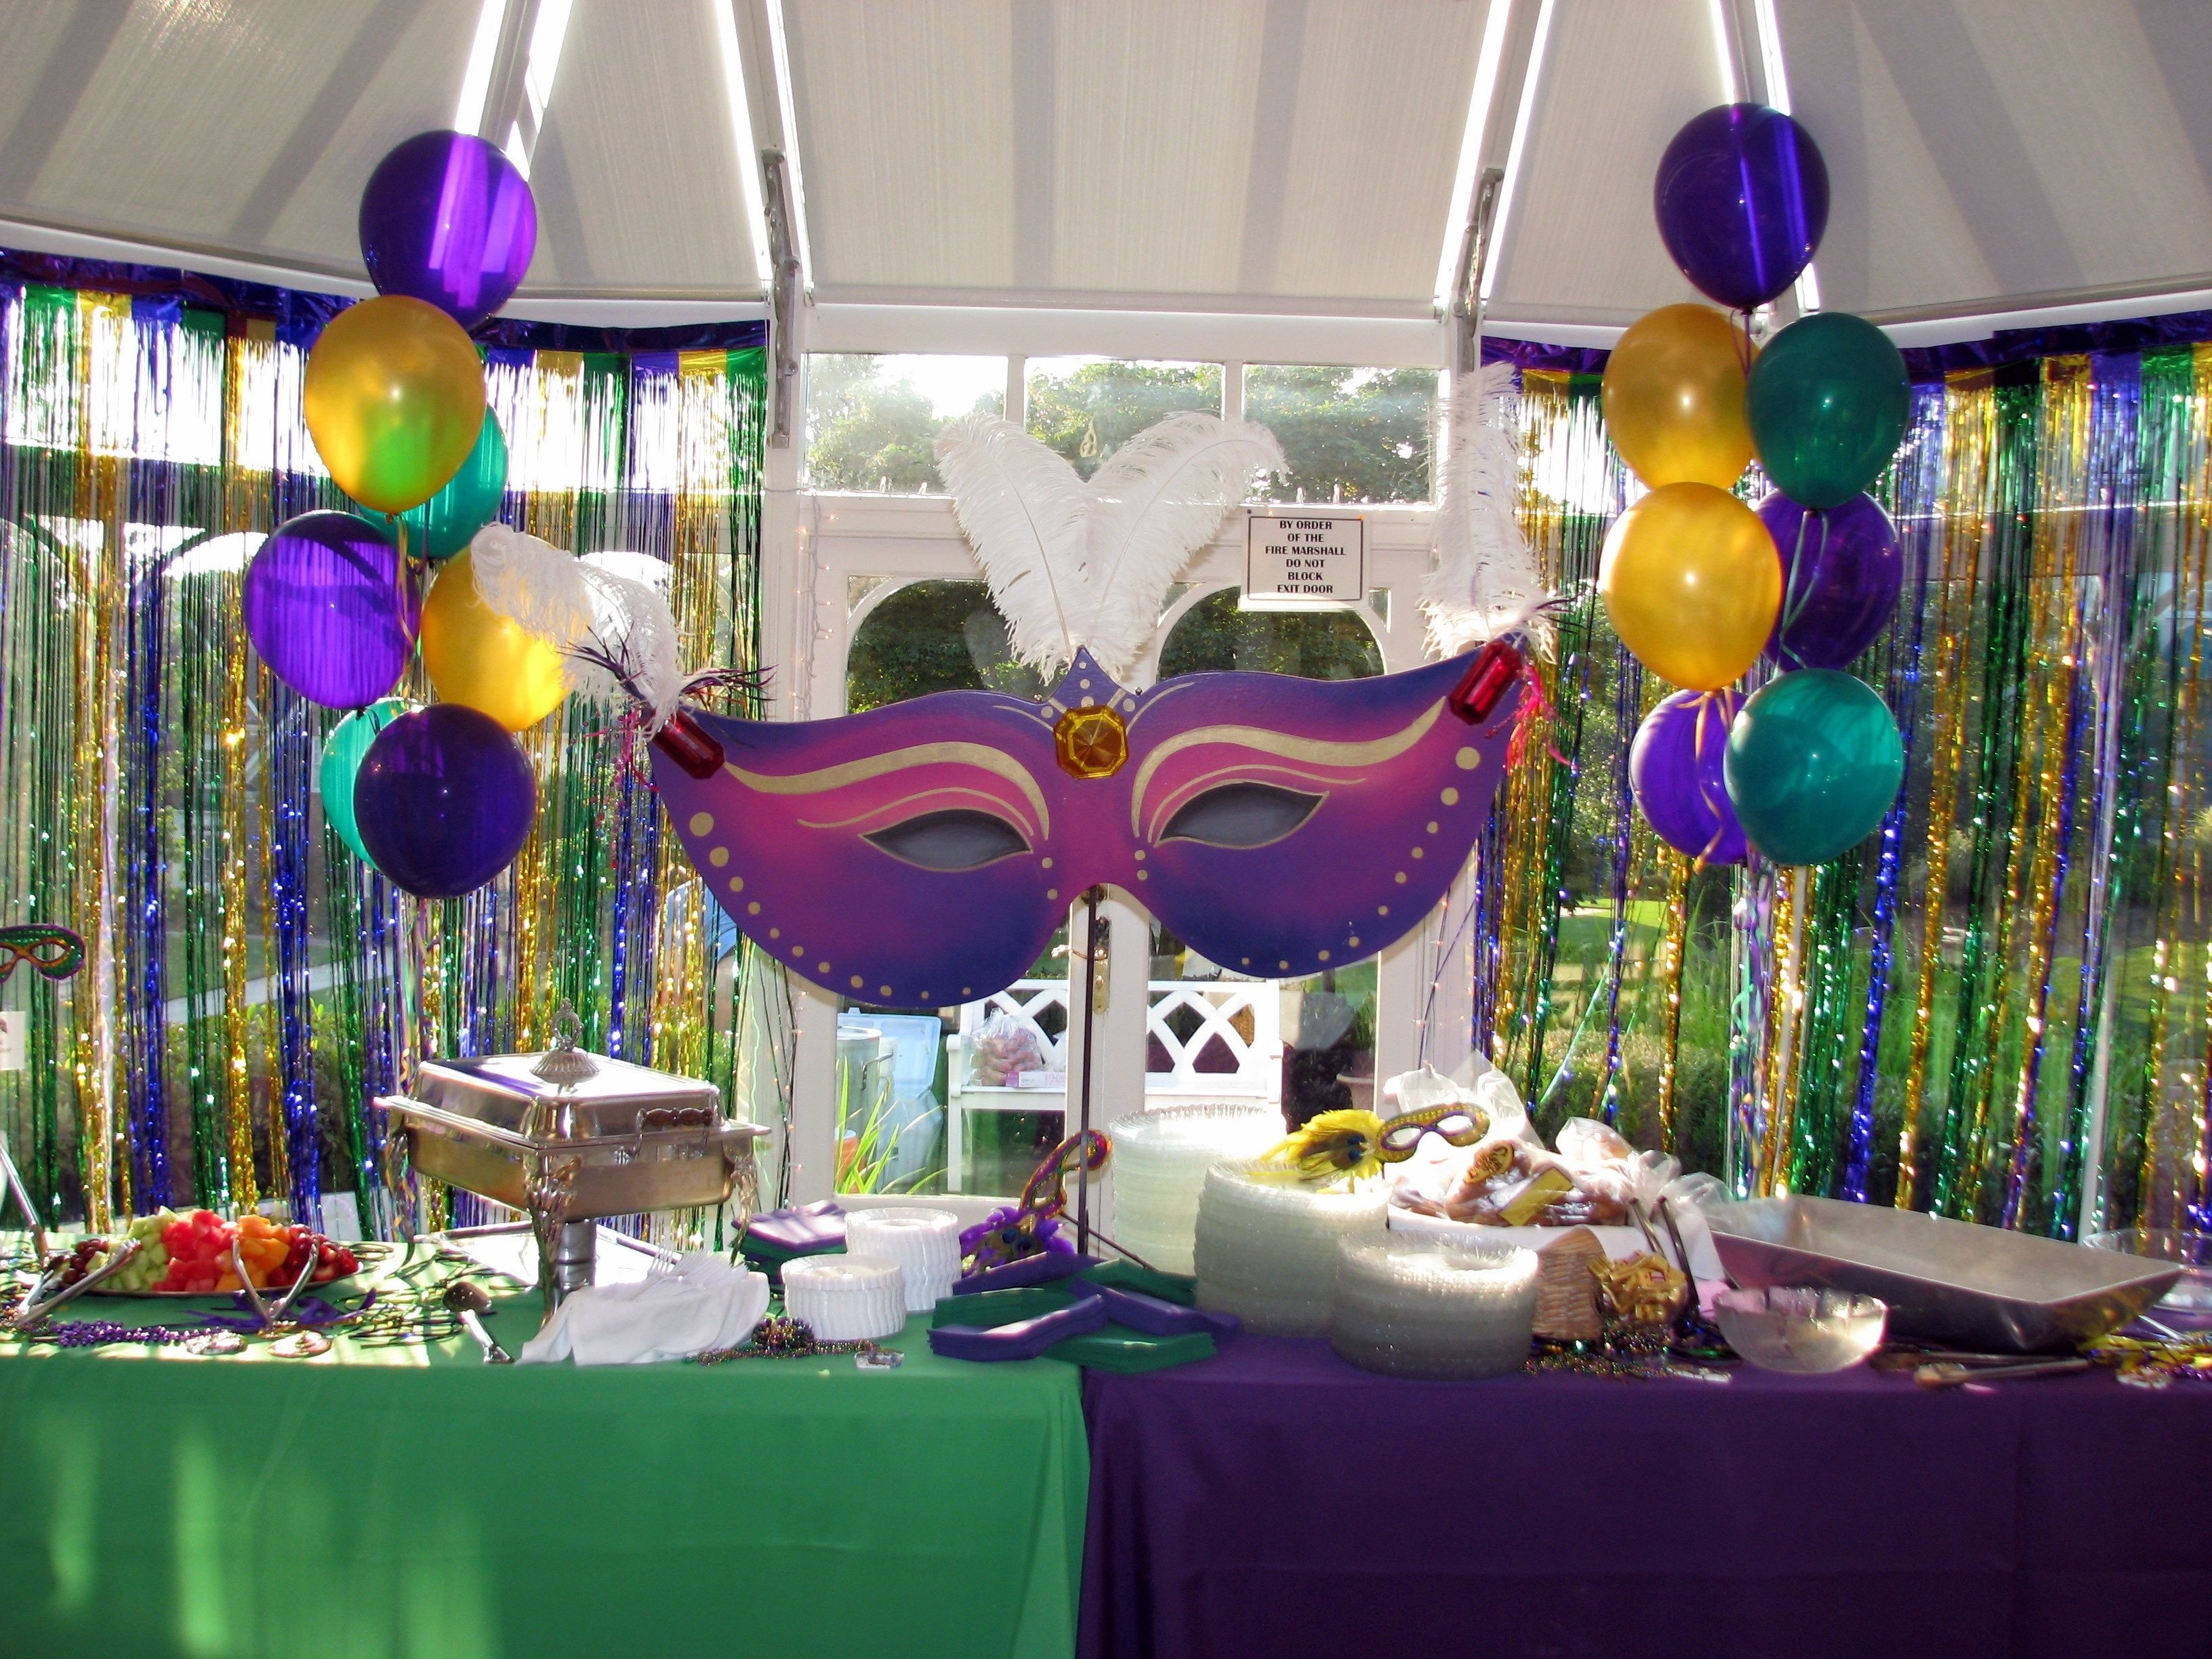 10 Most Recommended Mardi Gras Ideas For A Party mardi gras party recipes ideas mardi gras themed 40th surprise 2020